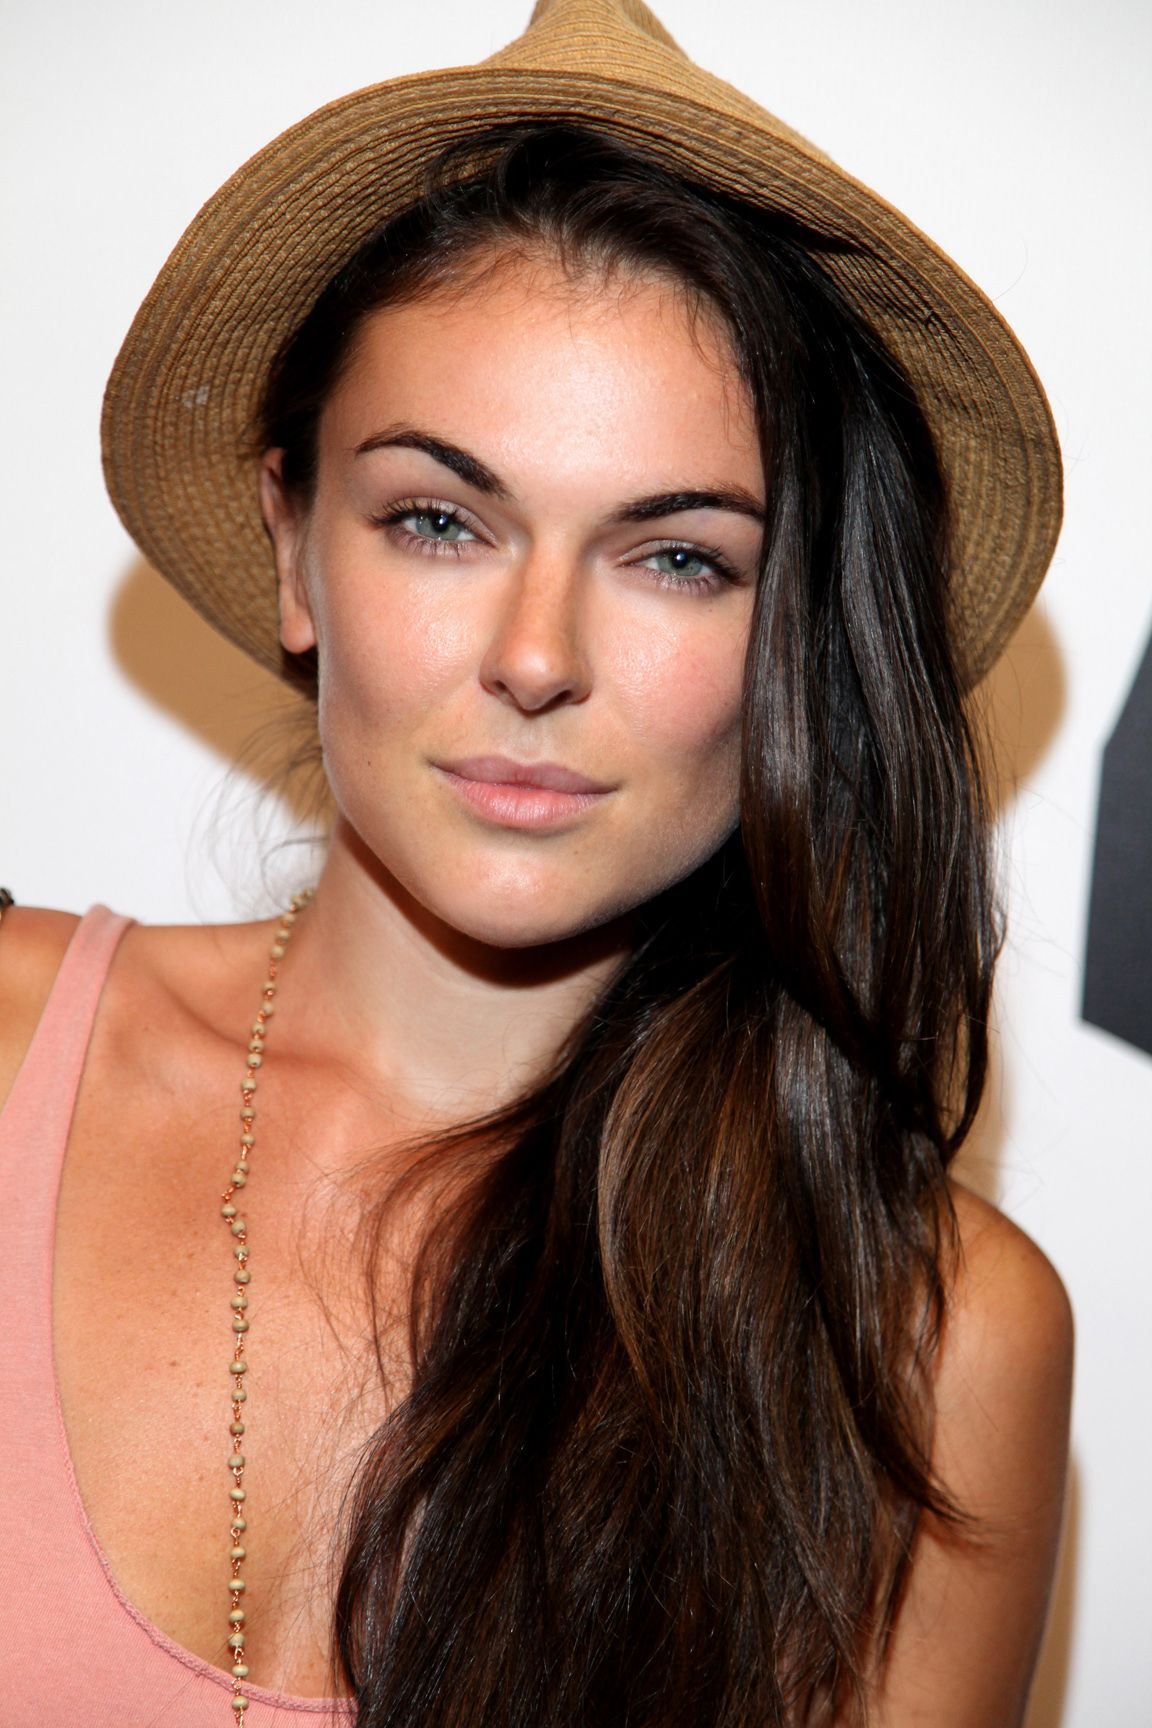 Selfie Serinda Swan nude (77 foto and video), Pussy, Paparazzi, Boobs, butt 2017